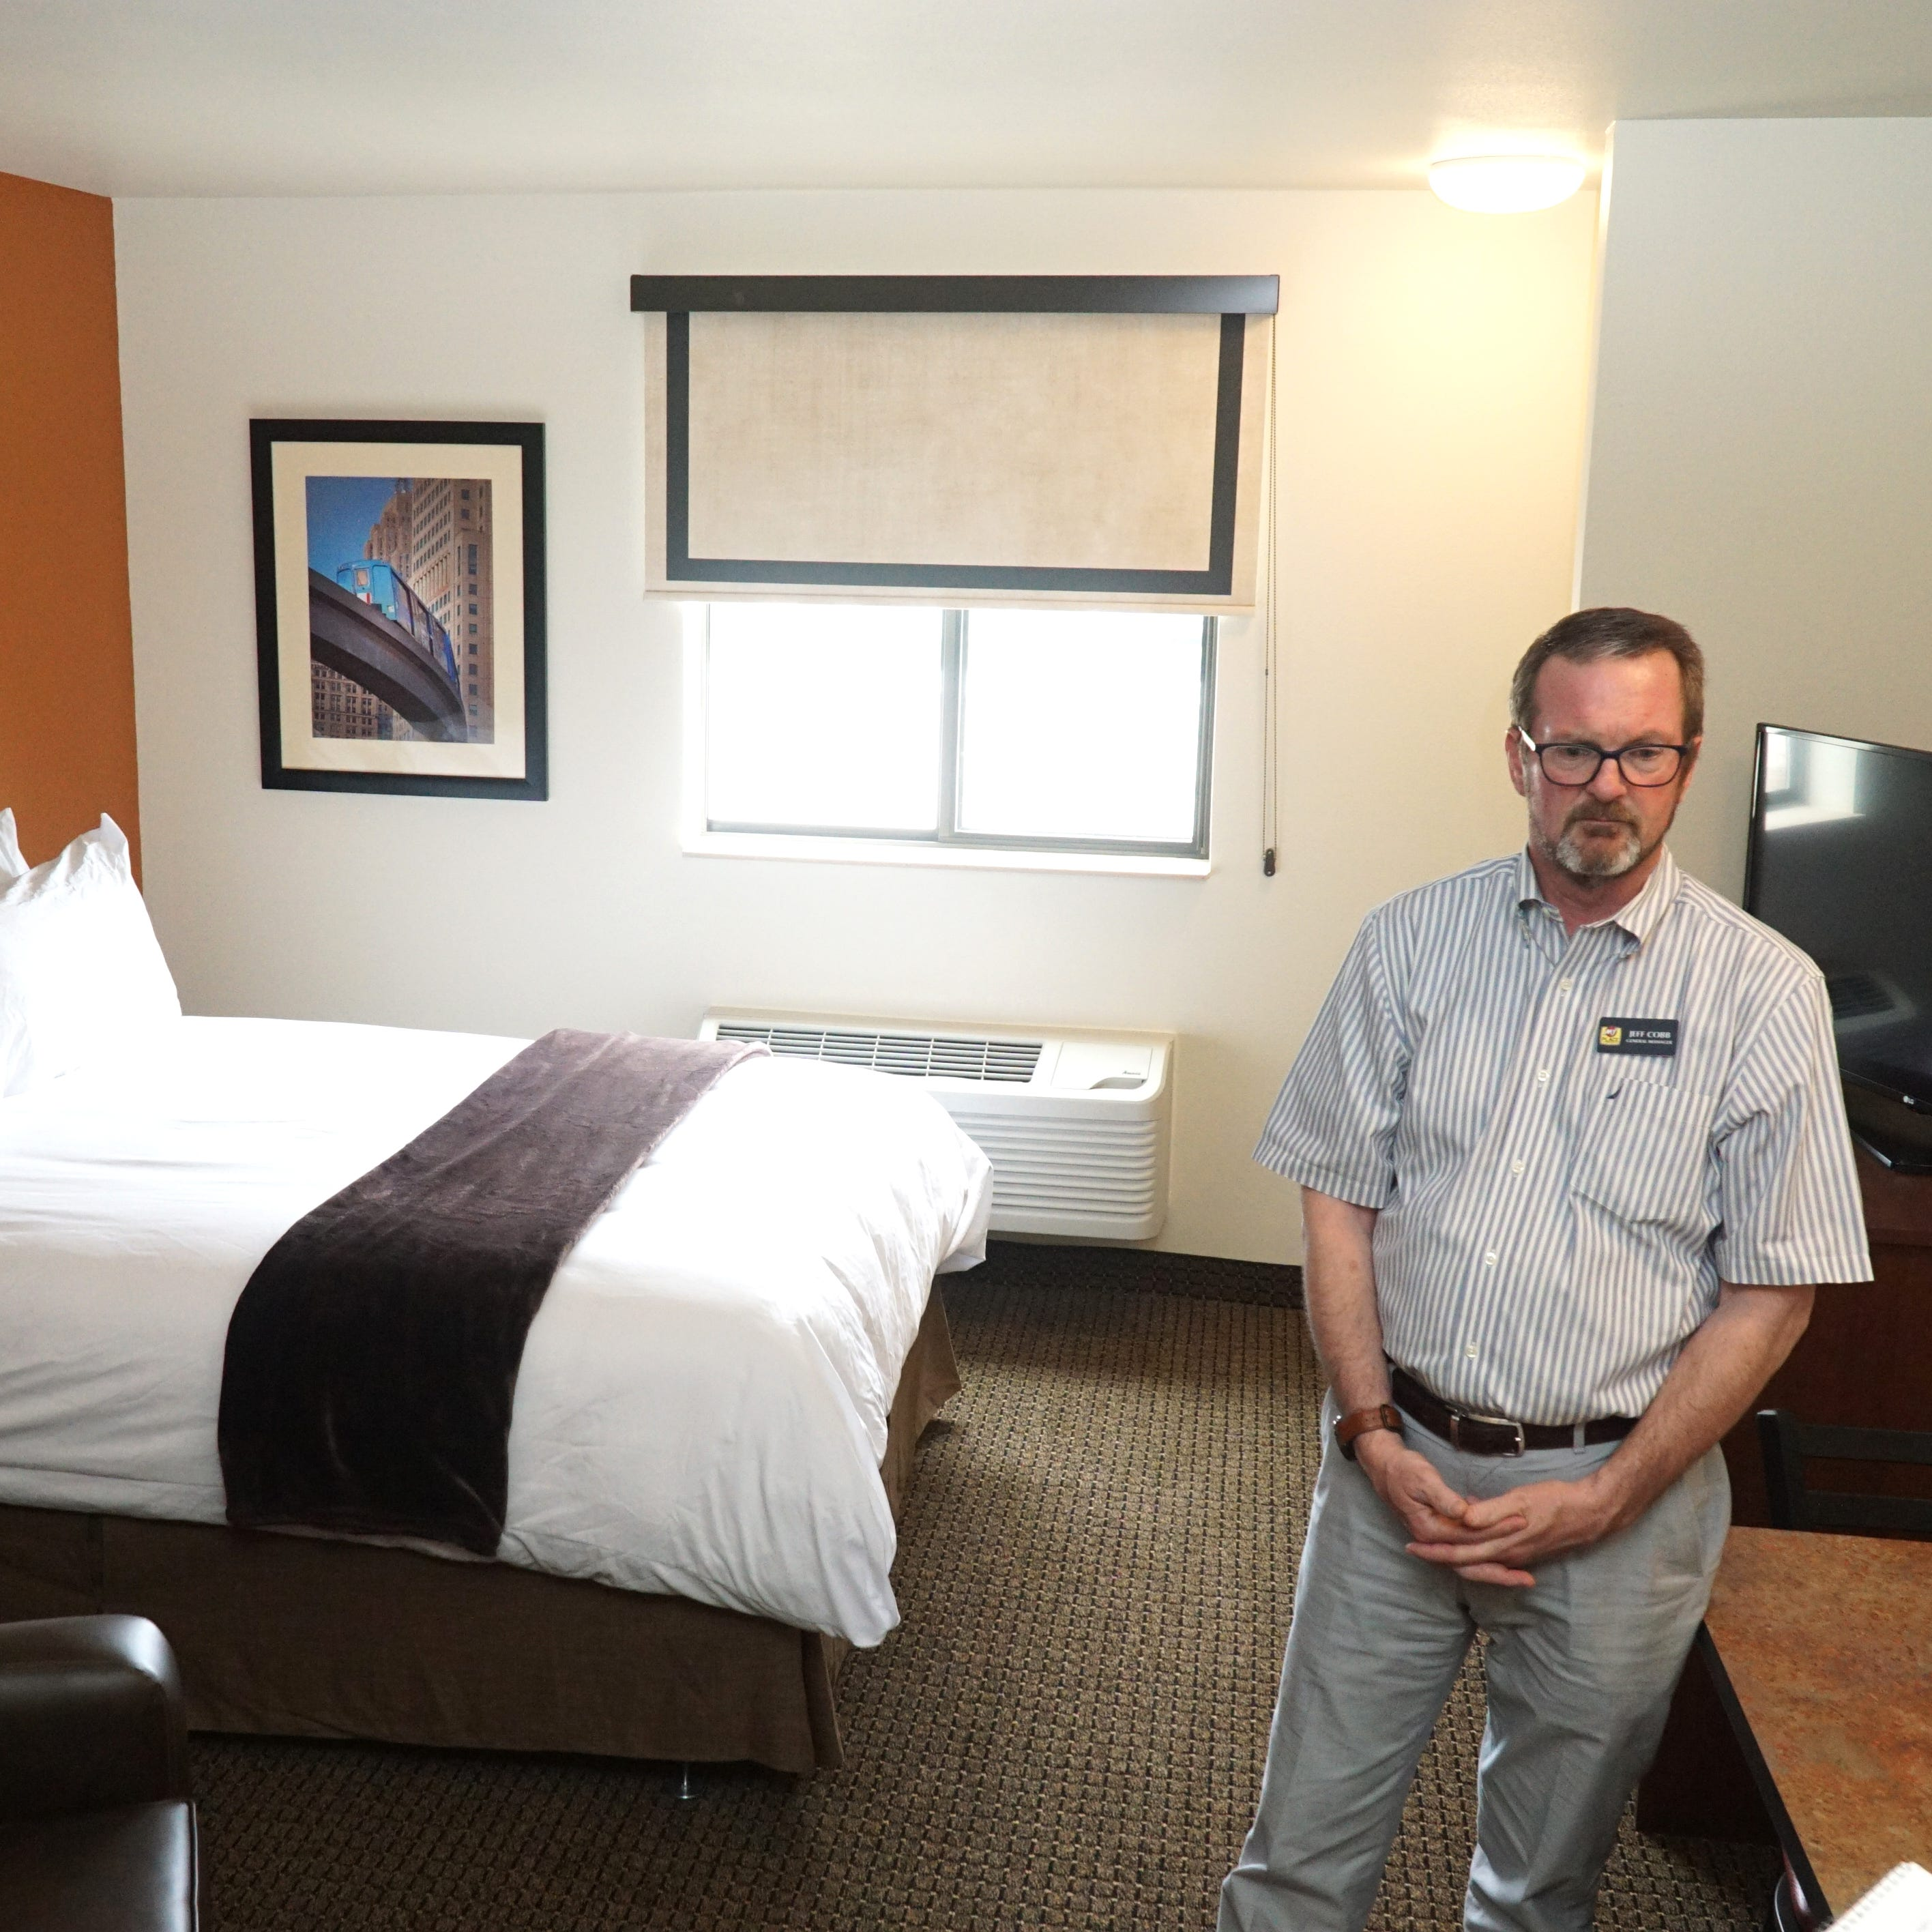 My Place Hotel's first hotel south of Mighty Mac opens in Wixom